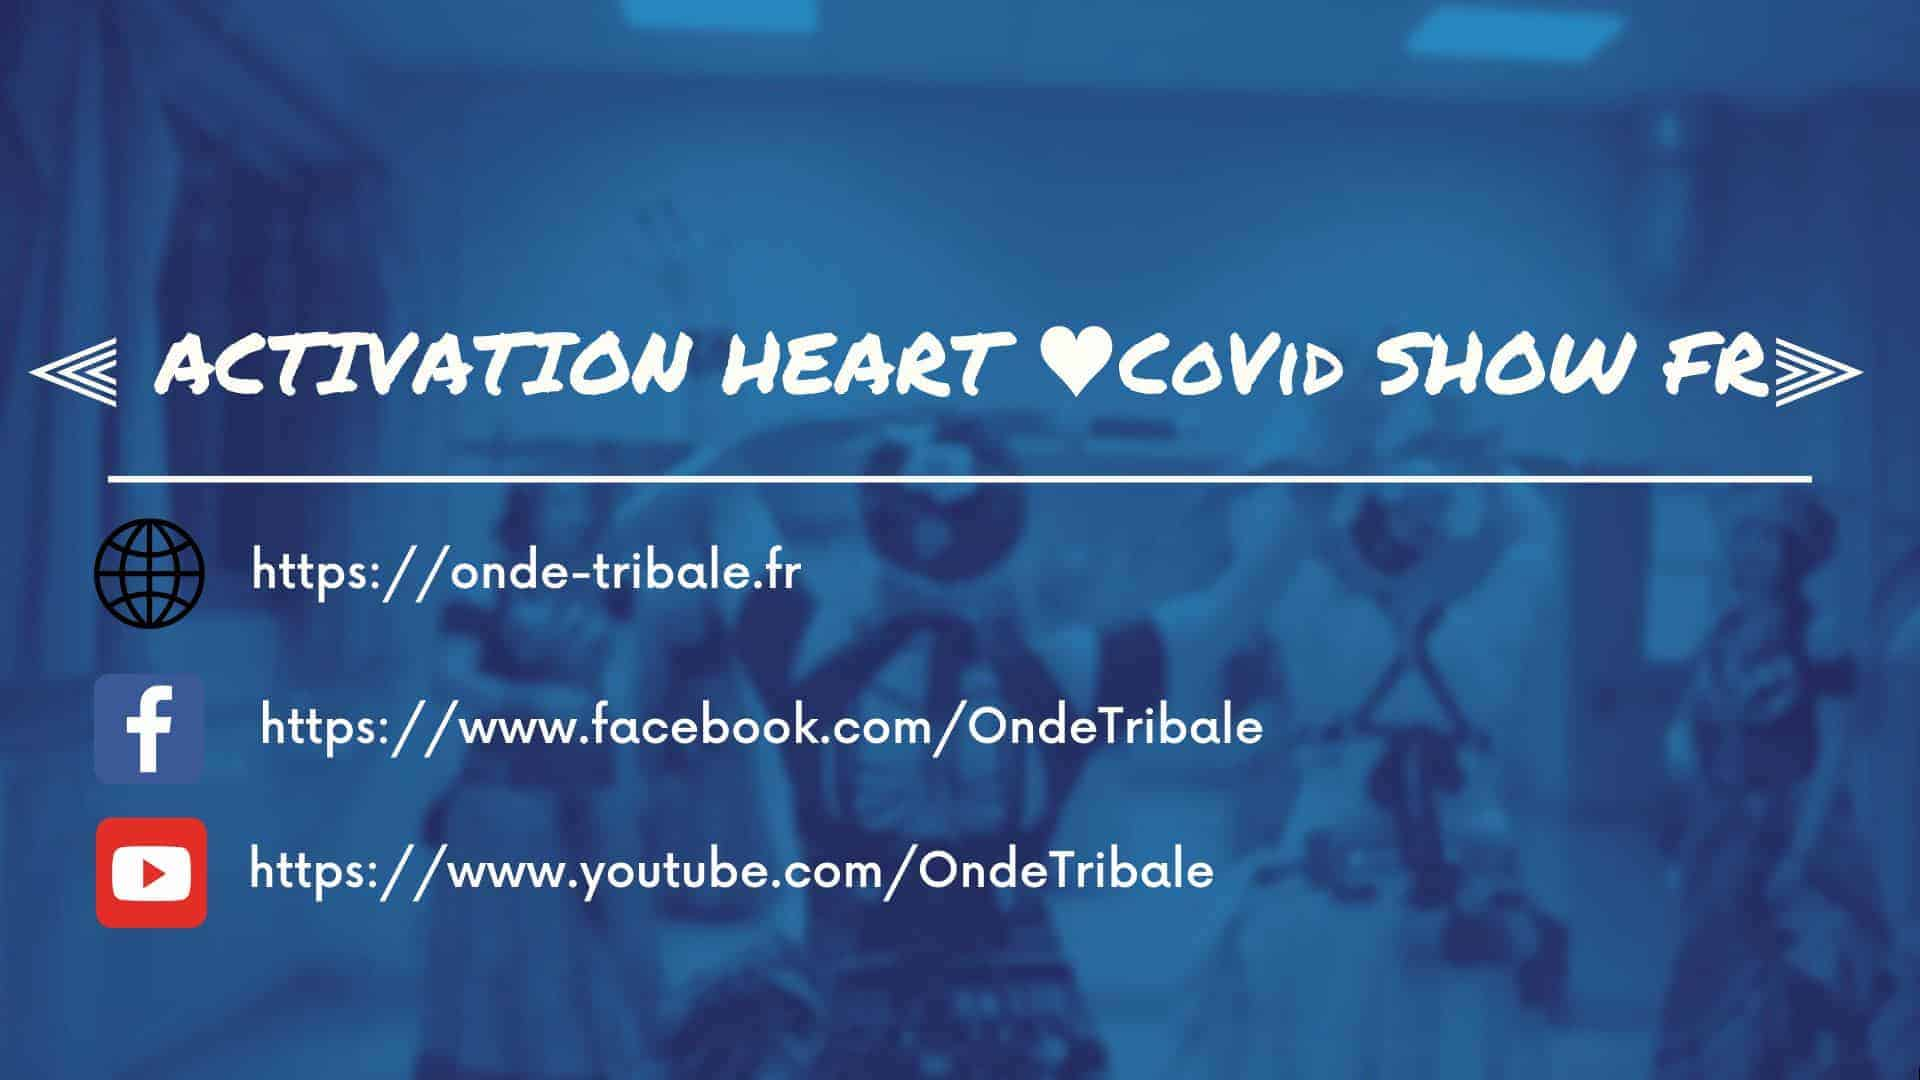 ACTIVATION HEART – CoVid SHOW FR